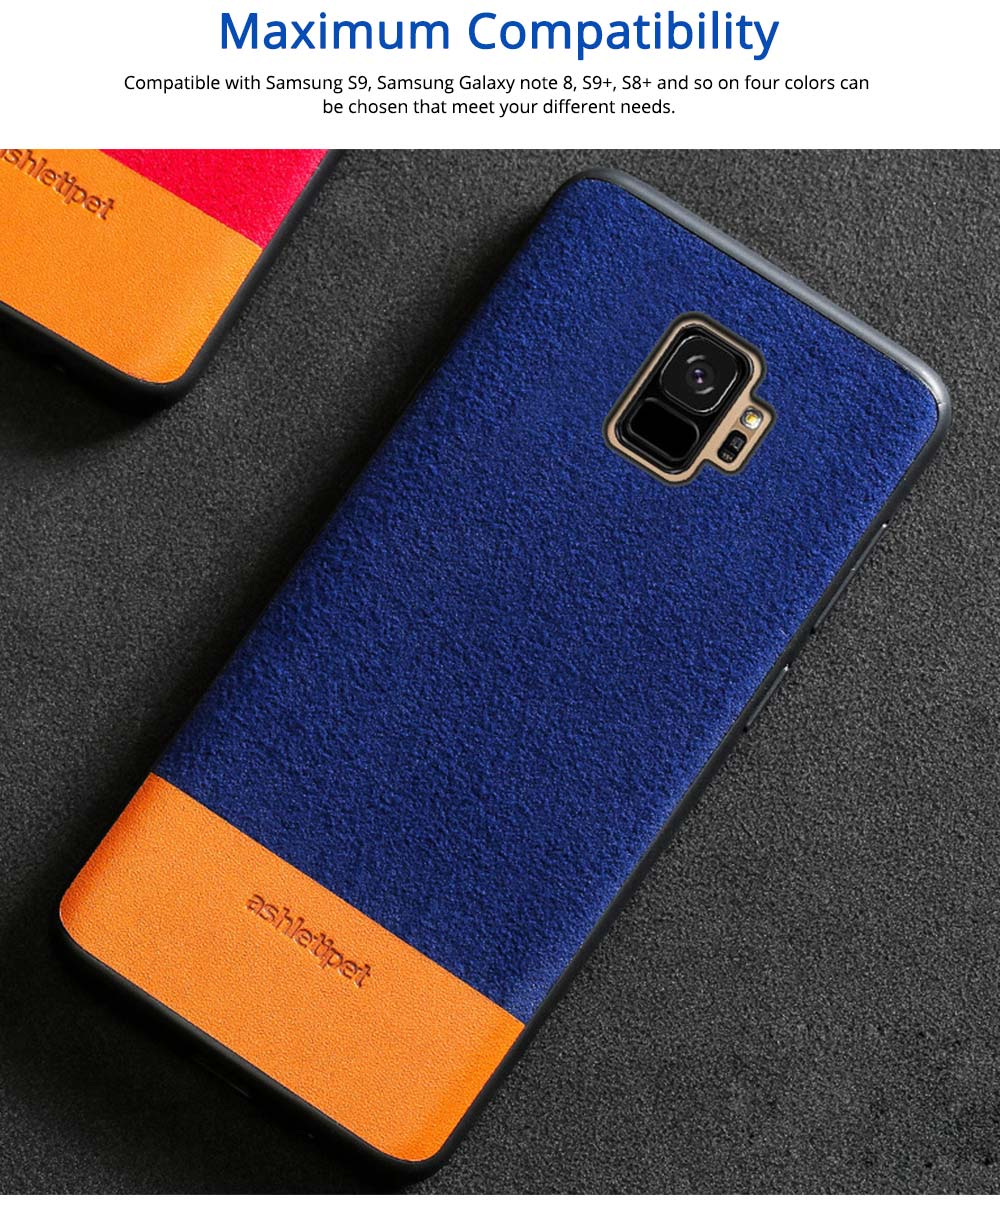 Samsung Genuine Leather Case, Creative Color Matching Elegant Phone Protective Case for Samsung note8, S7 edge, S9 5